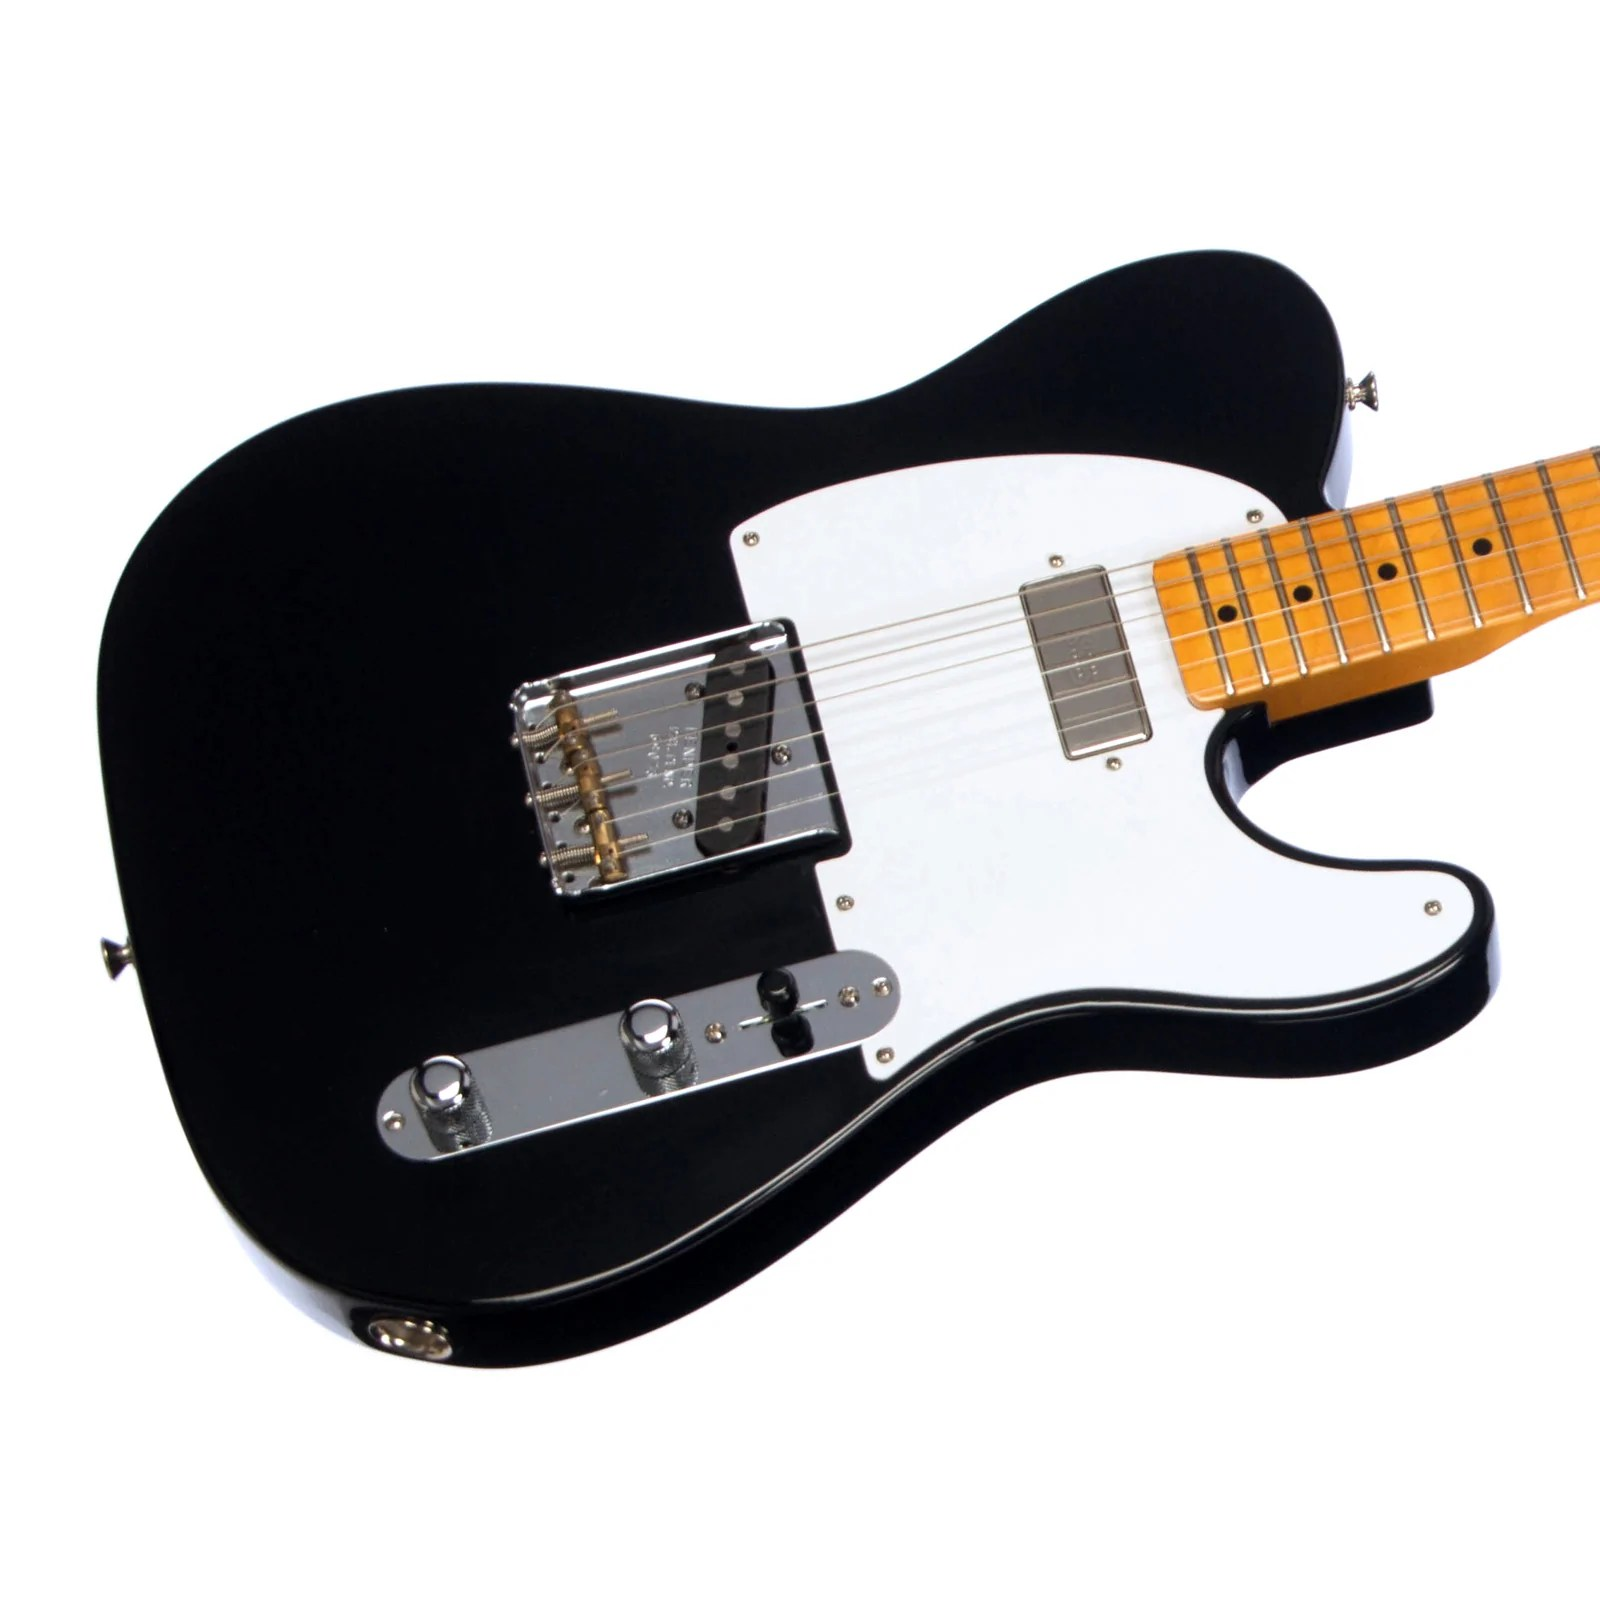 small resolution of used fender vintage hot rod 52 telecaster black electric guitar american vintage ri 3952 telecaster loaded control plate jack wiring